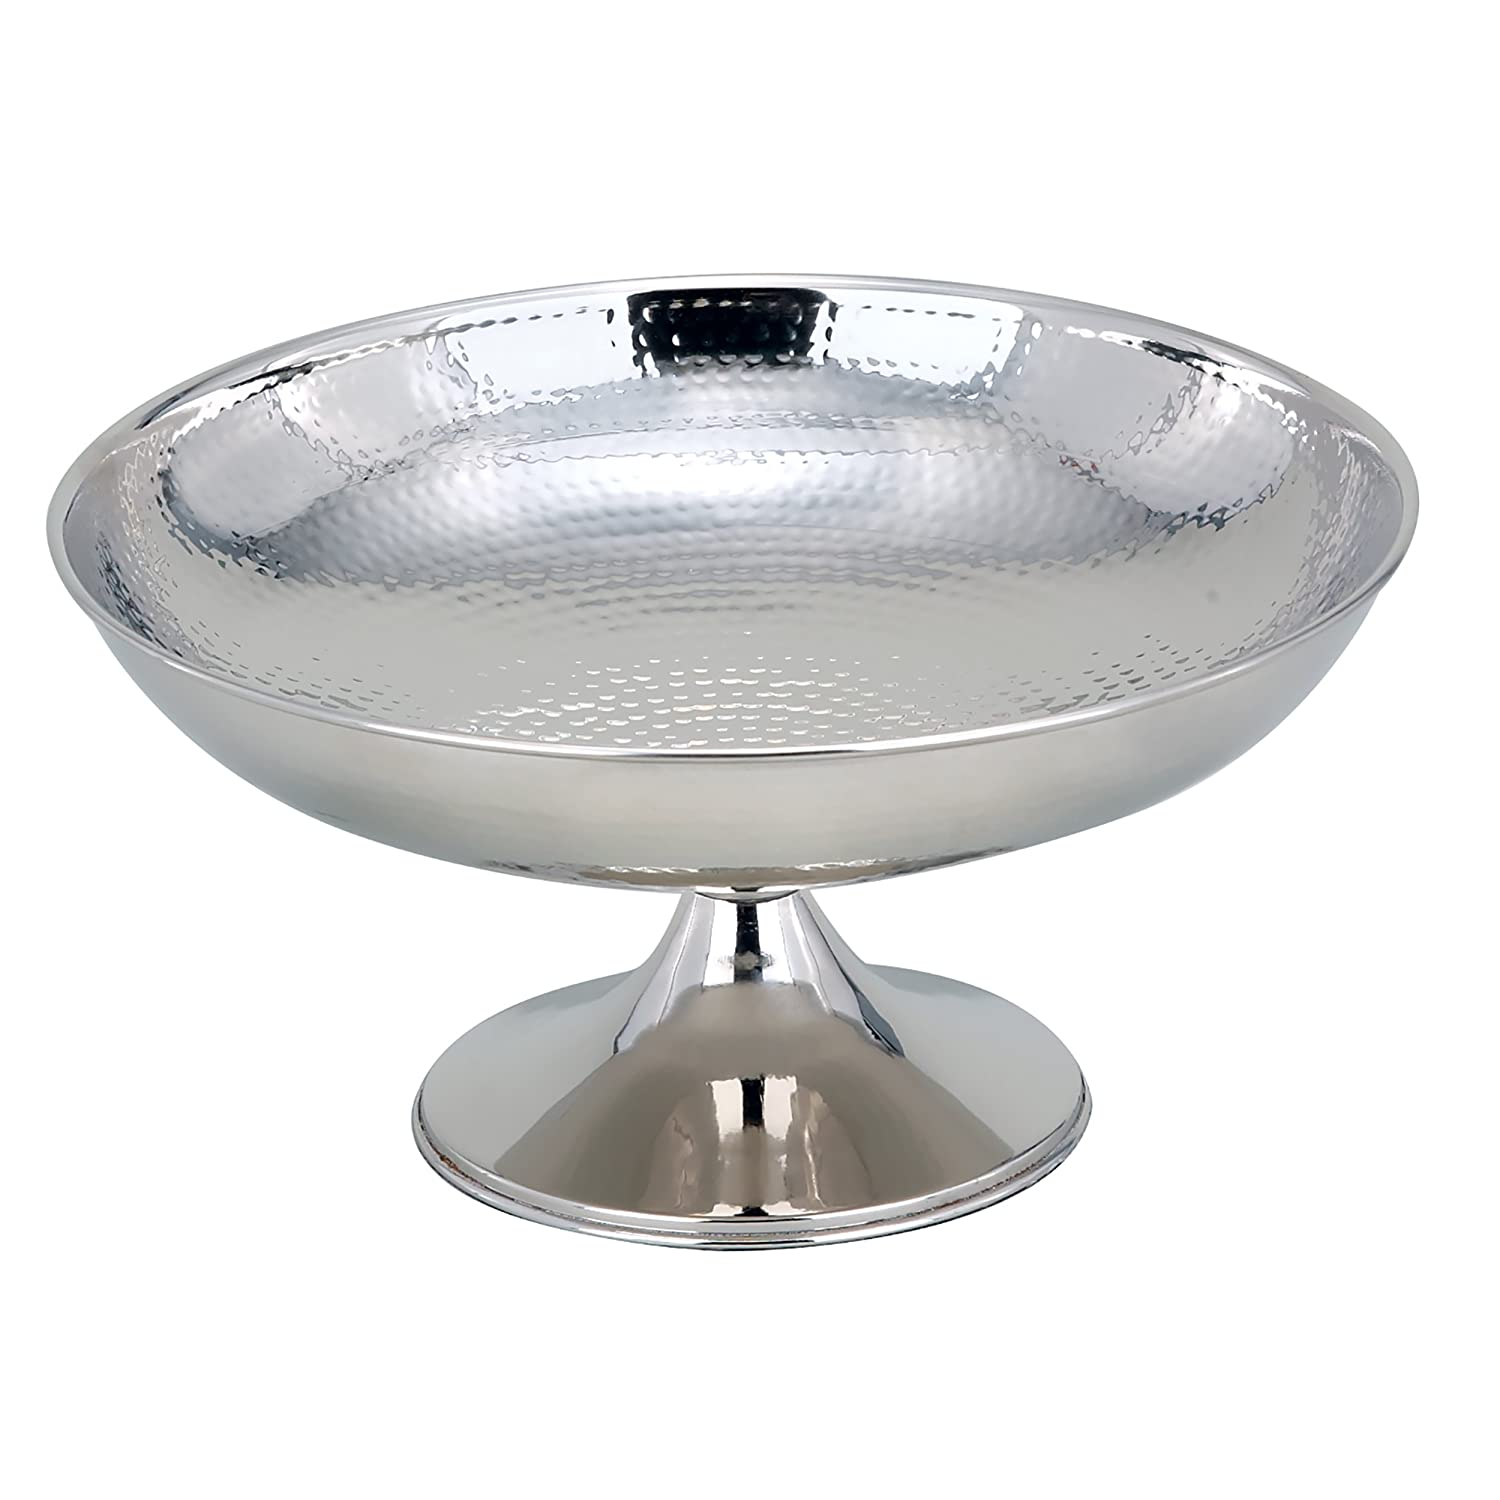 Elegance 72662 Hammered Footed Centerpiece Bowl, 12-Inch Dia, Silver Elegance Silver